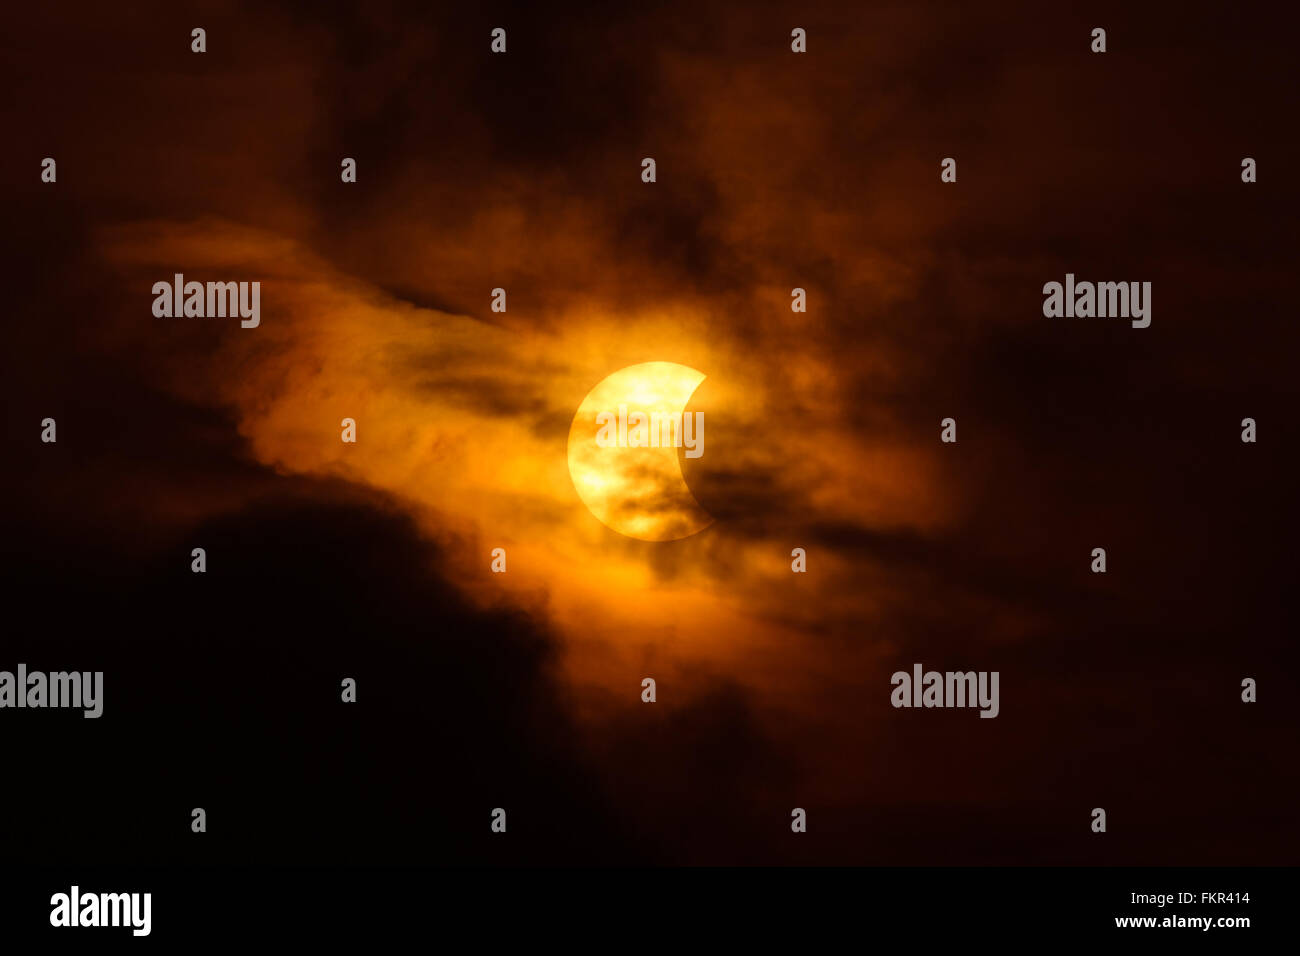 Partial solar eclipse (around 41 percent) behind dark cloud in Bangkok, Thailand on 9 March 2016. - Stock Image